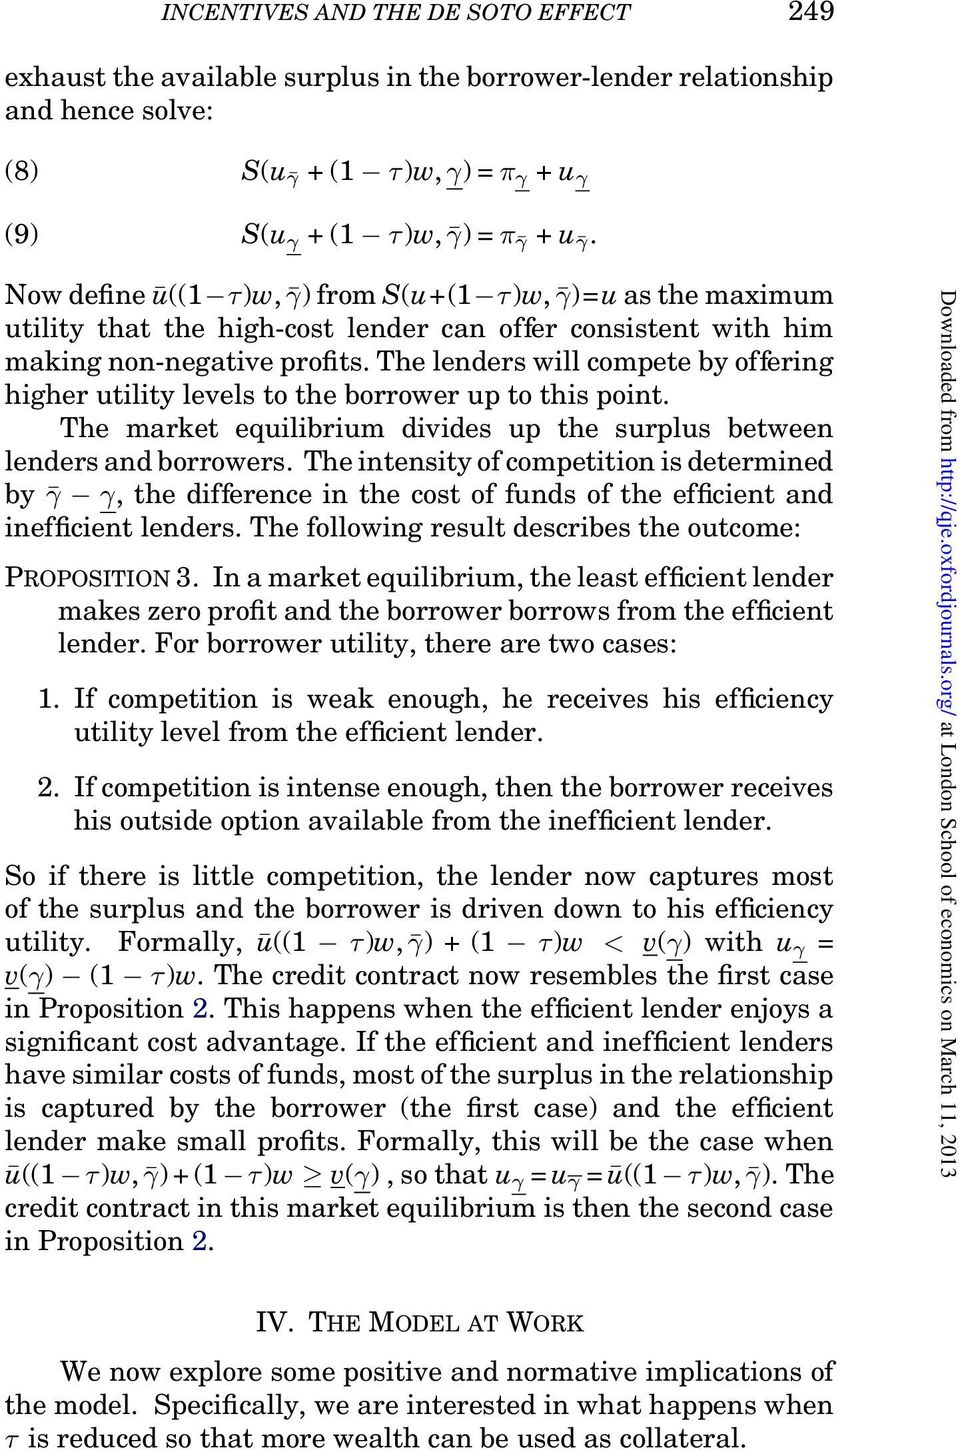 The lenders will compete by offering higher utility levels to the borrower up to this point. The market equilibrium divides up the surplus between lenders andborrowers.